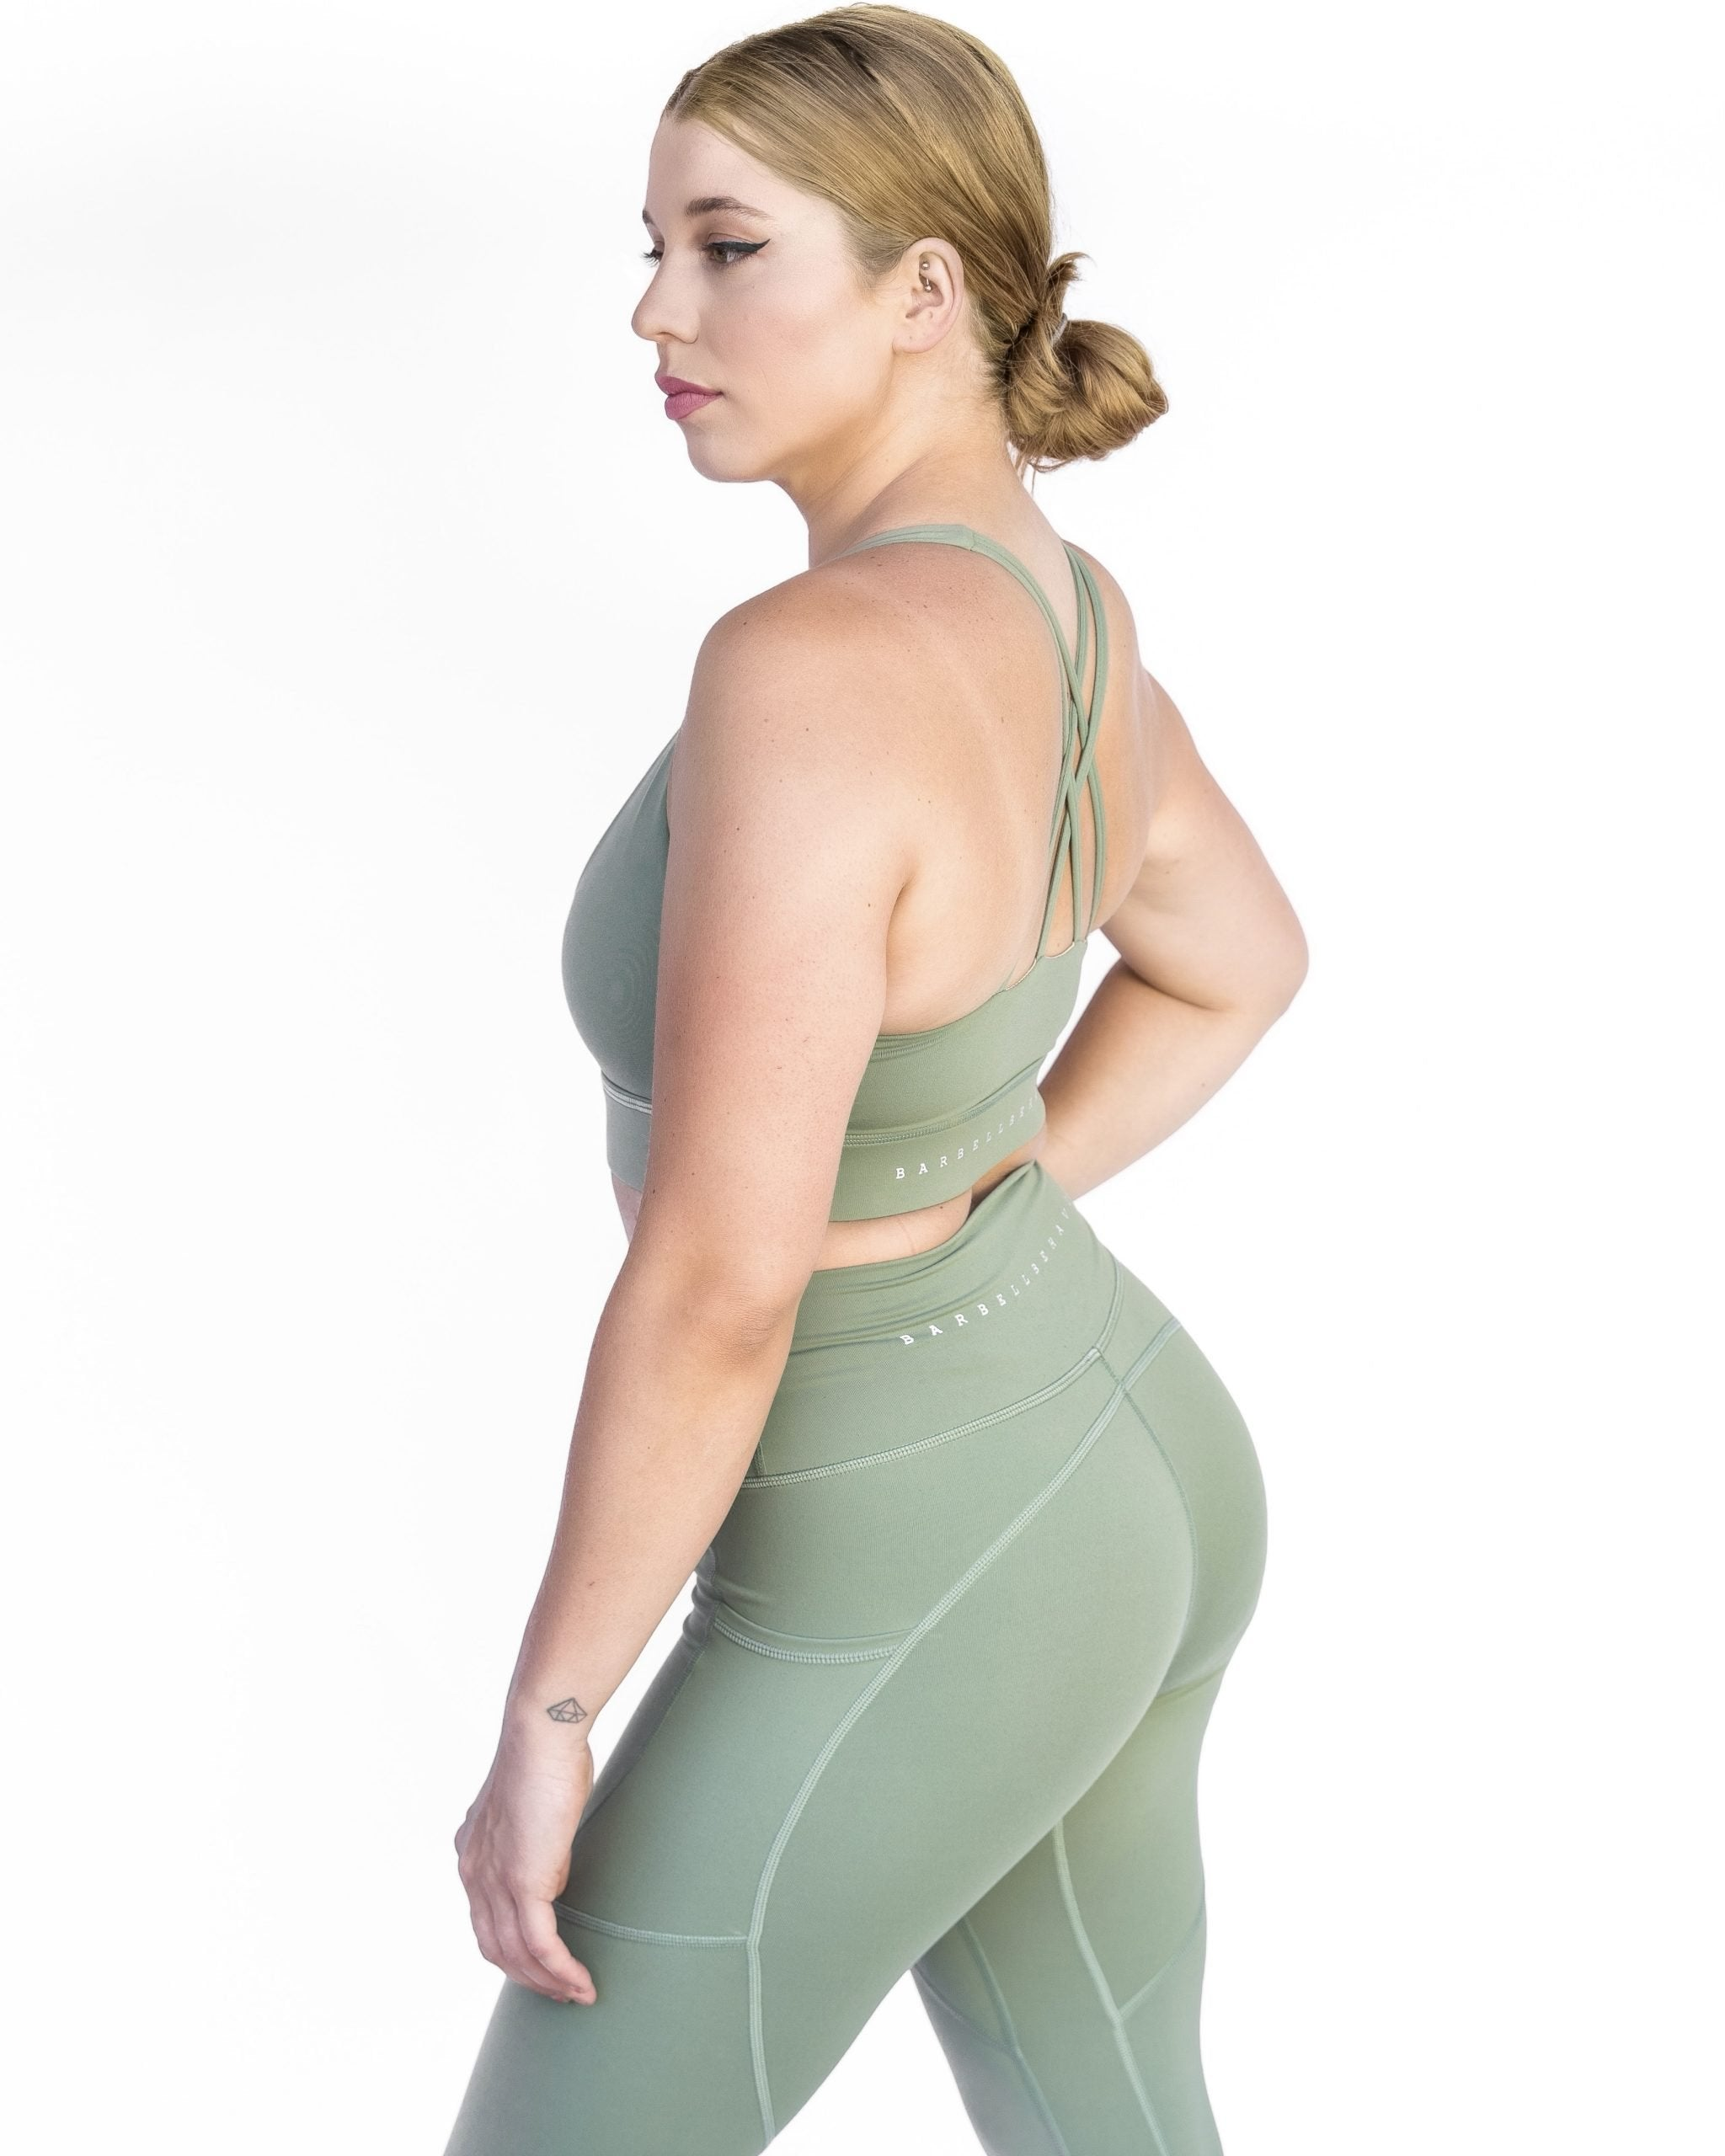 Olive Green Pocket legging halter sports bra barbell behaviour